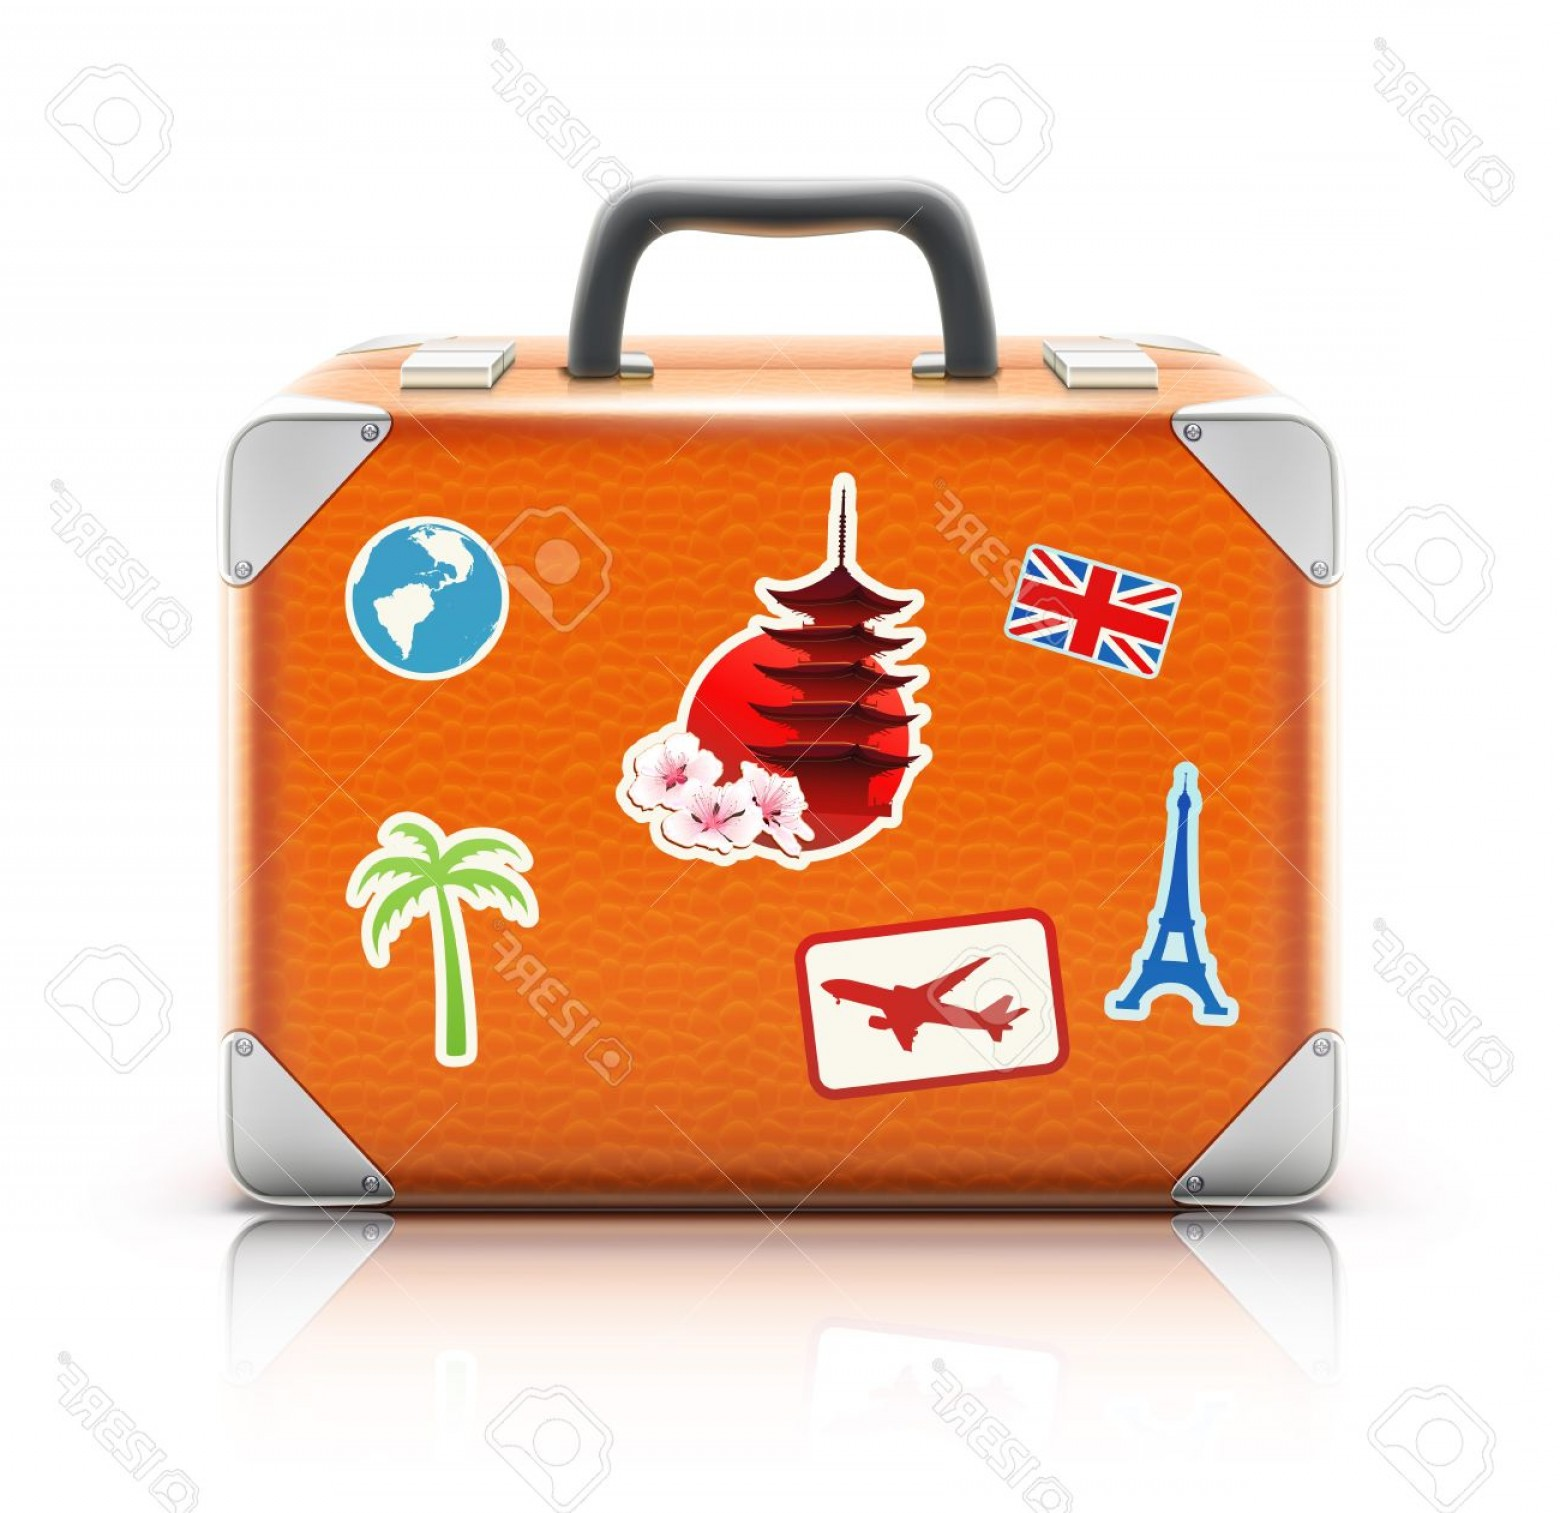 Vintage Luggage Vector: Photovector Illustration Of Vintage Suitcase With Funky Stickers Isolated On White Background